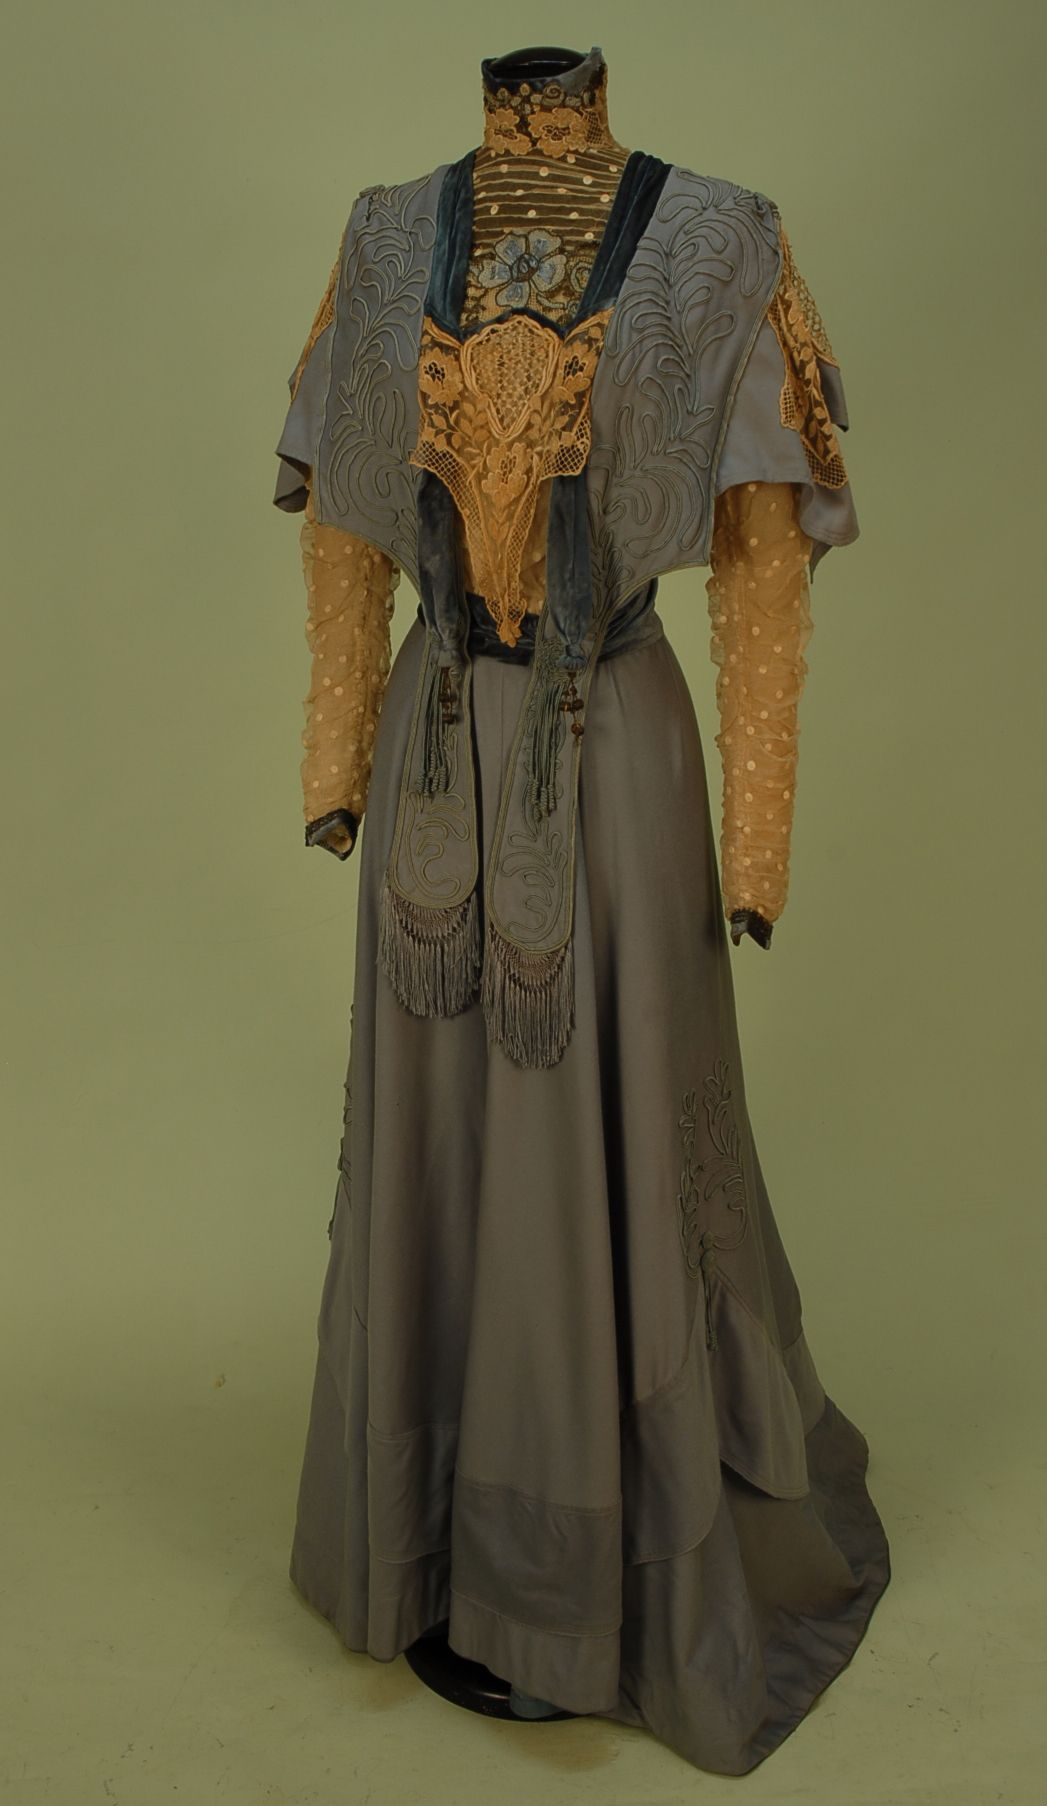 cb24c0e9075ea LOT 424 - whitakerauction | Edwardian/Teens | Dresses, Edwardian ...